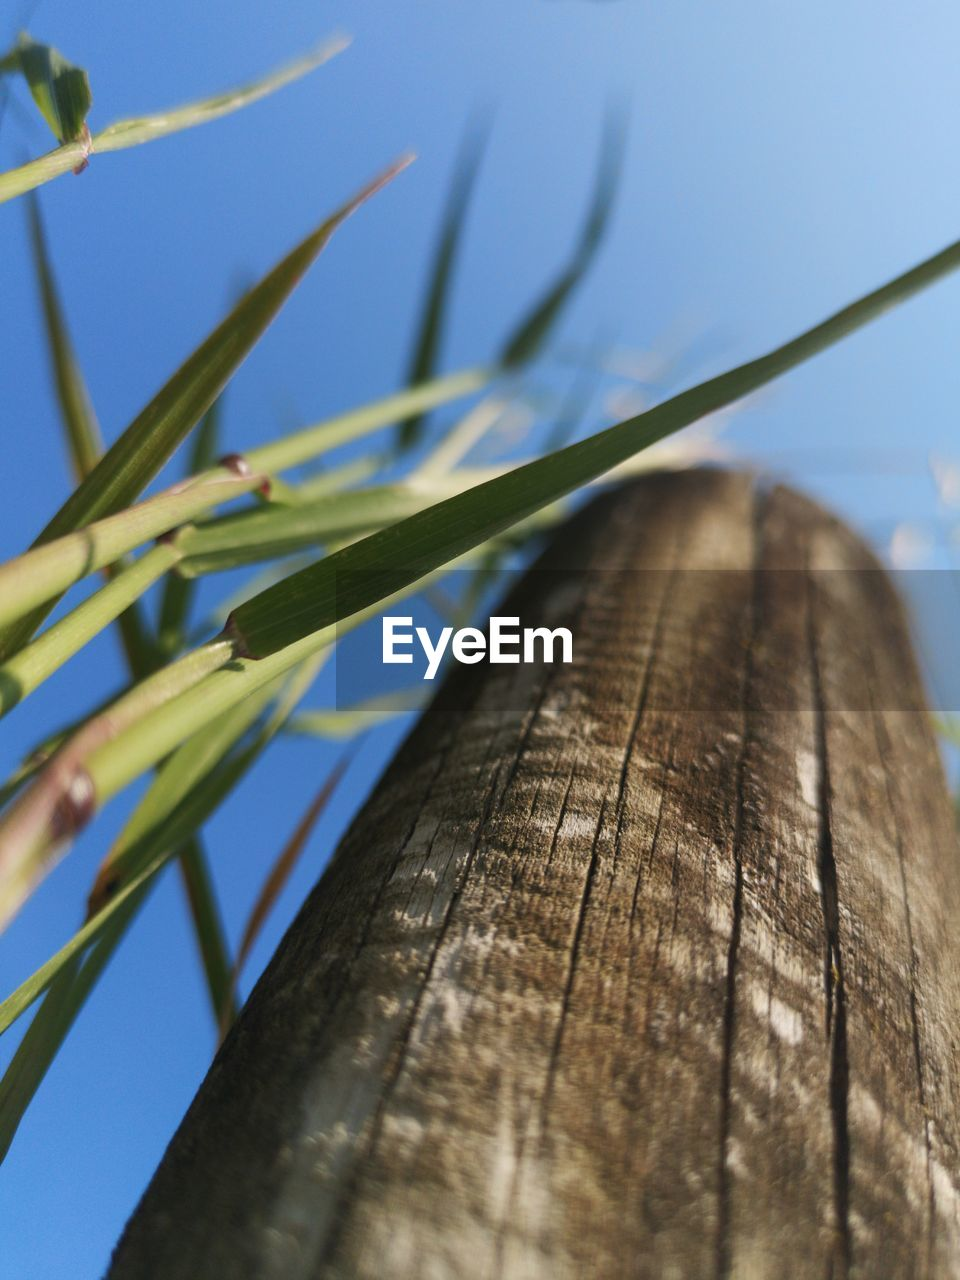 plant, close-up, wood - material, nature, no people, low angle view, selective focus, day, sky, growth, outdoors, focus on foreground, sunlight, tree, clear sky, green color, textured, wood, natural pattern, beauty in nature, blade of grass